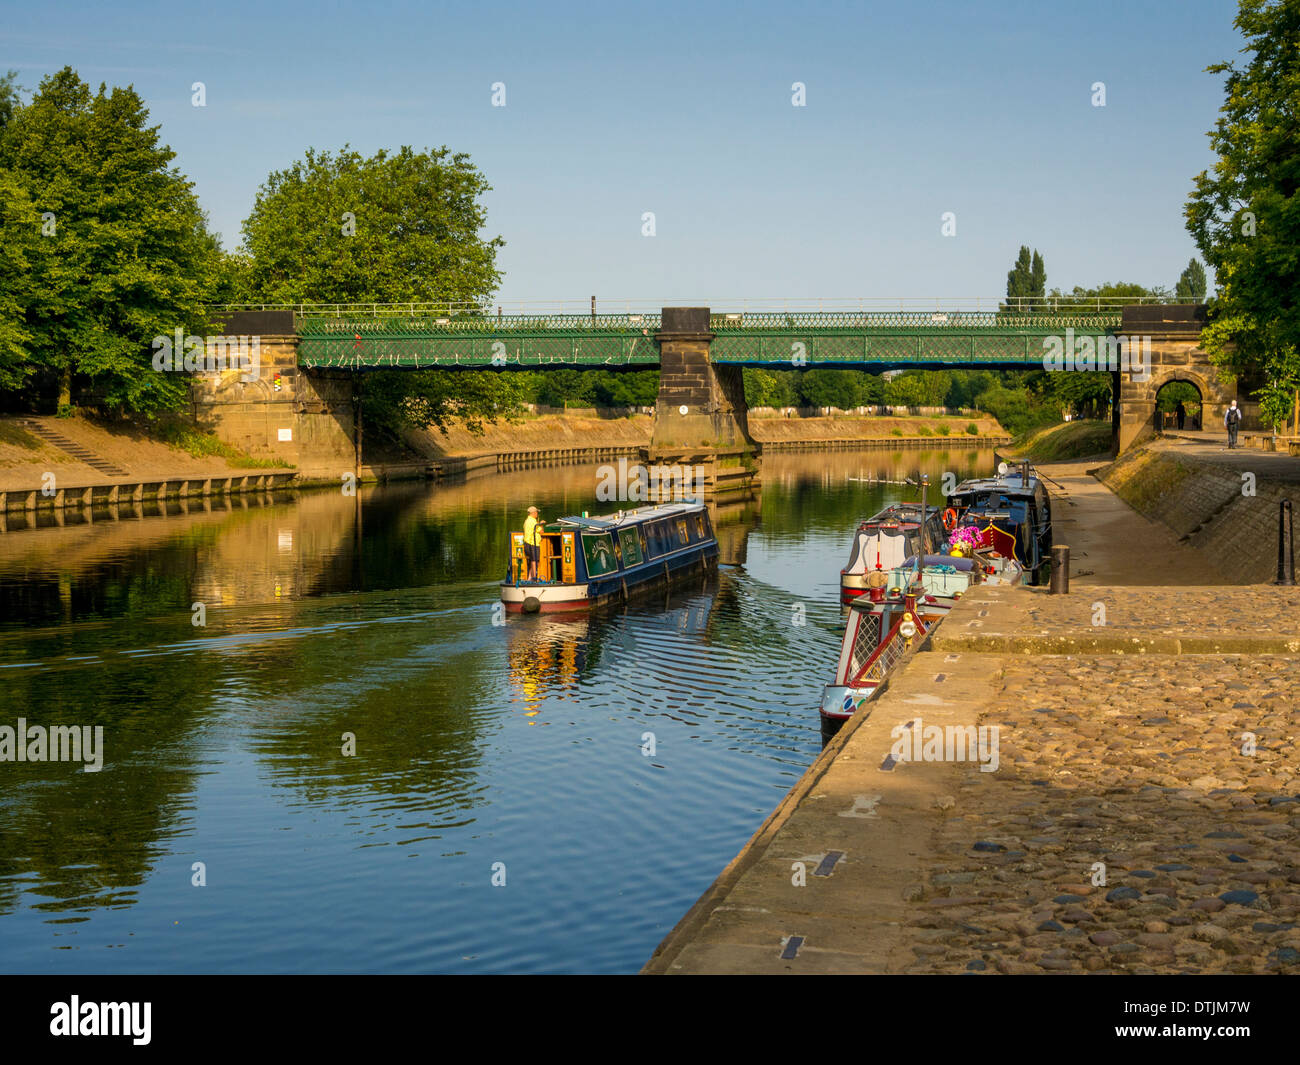 Longboat approaching Scarborough Railway Bridge on river Ouse in York - Stock Image